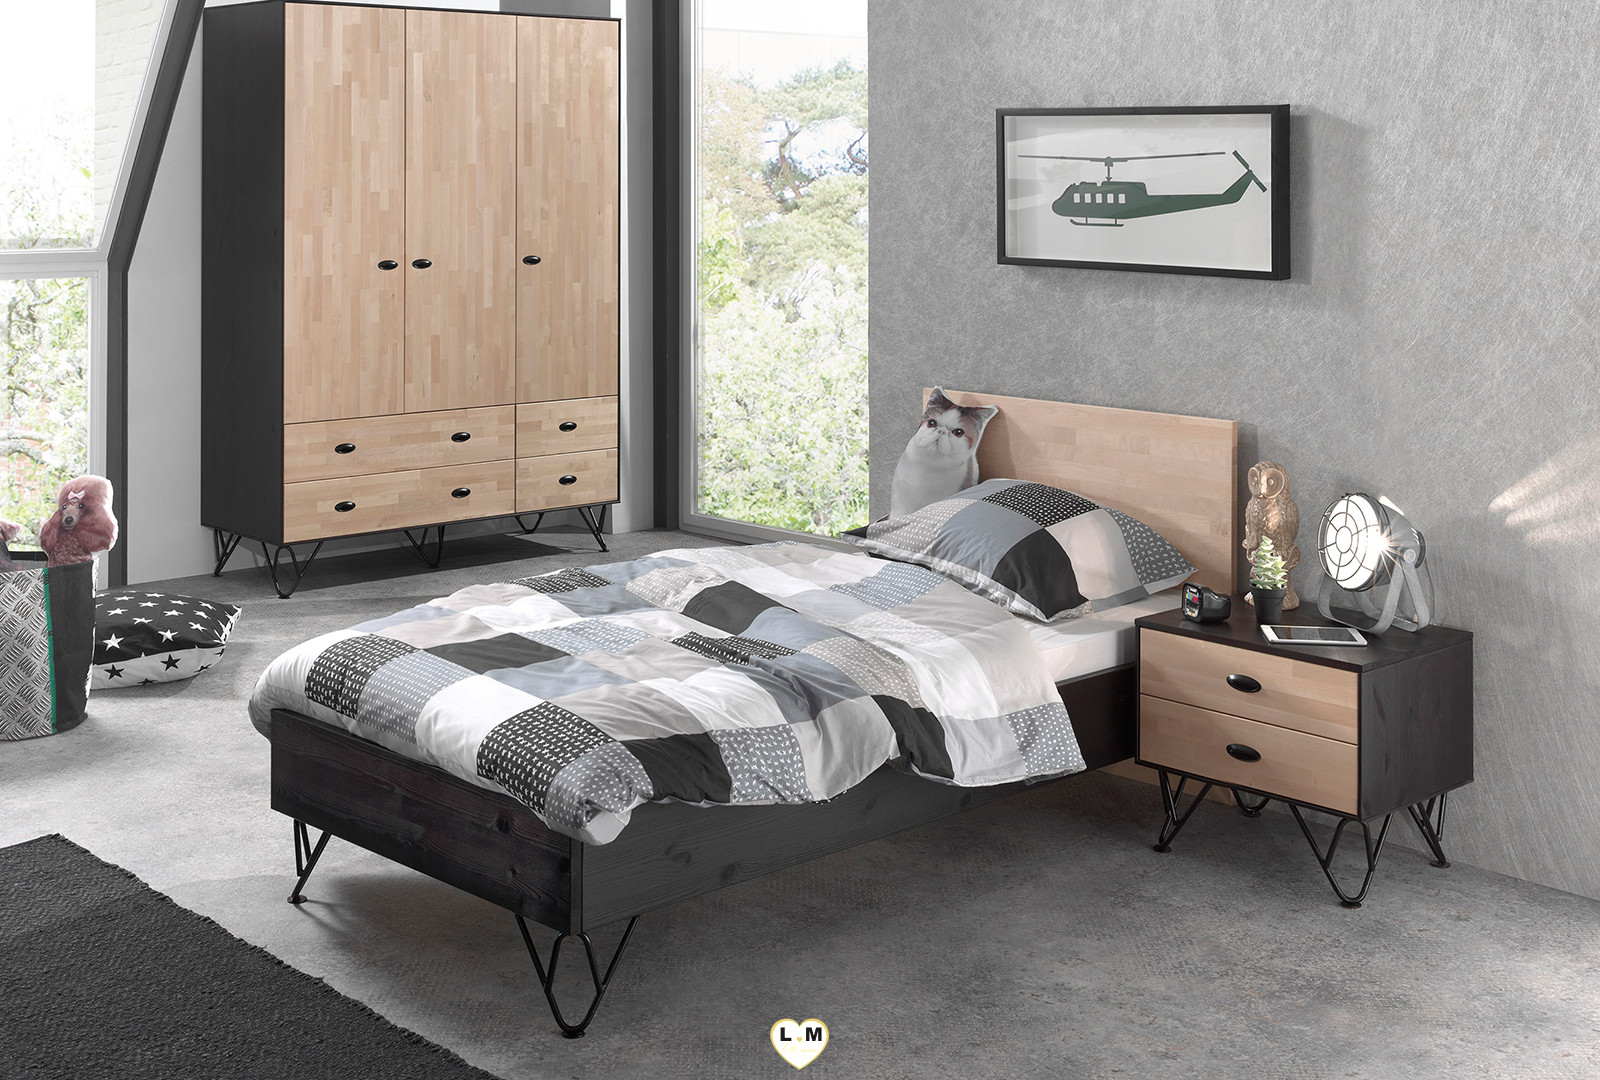 willy chambre ado l 39 armoire 3 portes lignemeuble com. Black Bedroom Furniture Sets. Home Design Ideas